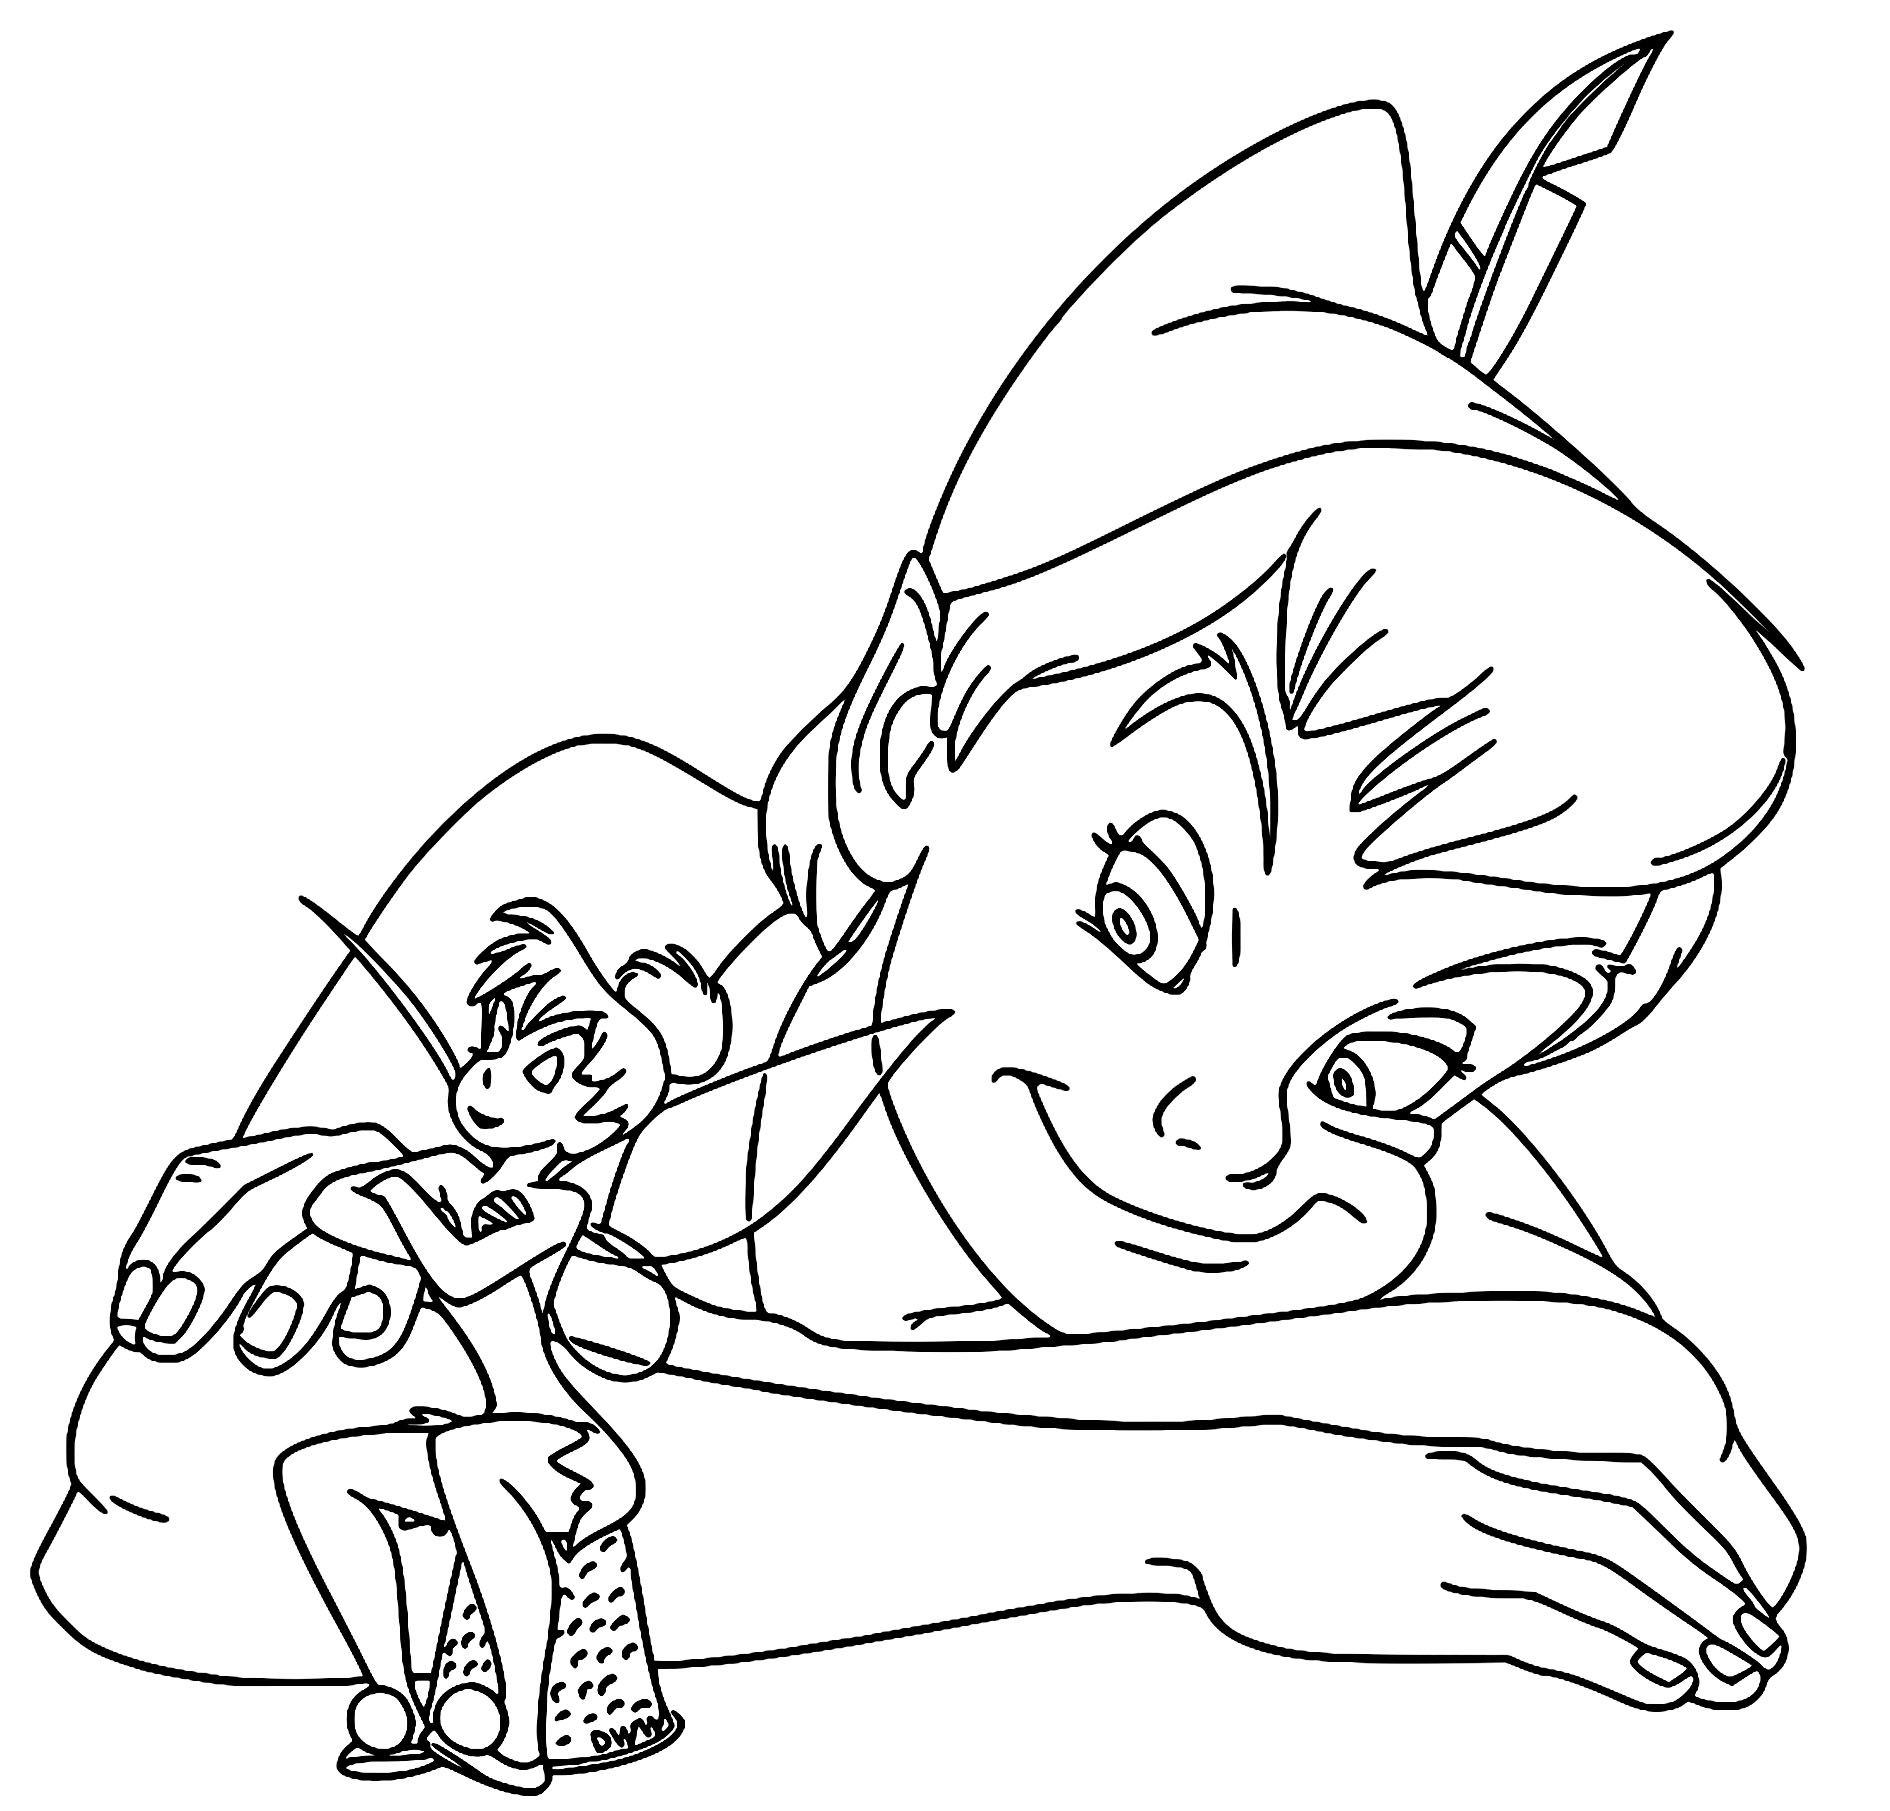 Peter Pan & Tinker Bell Coloring Pages | Pinterest